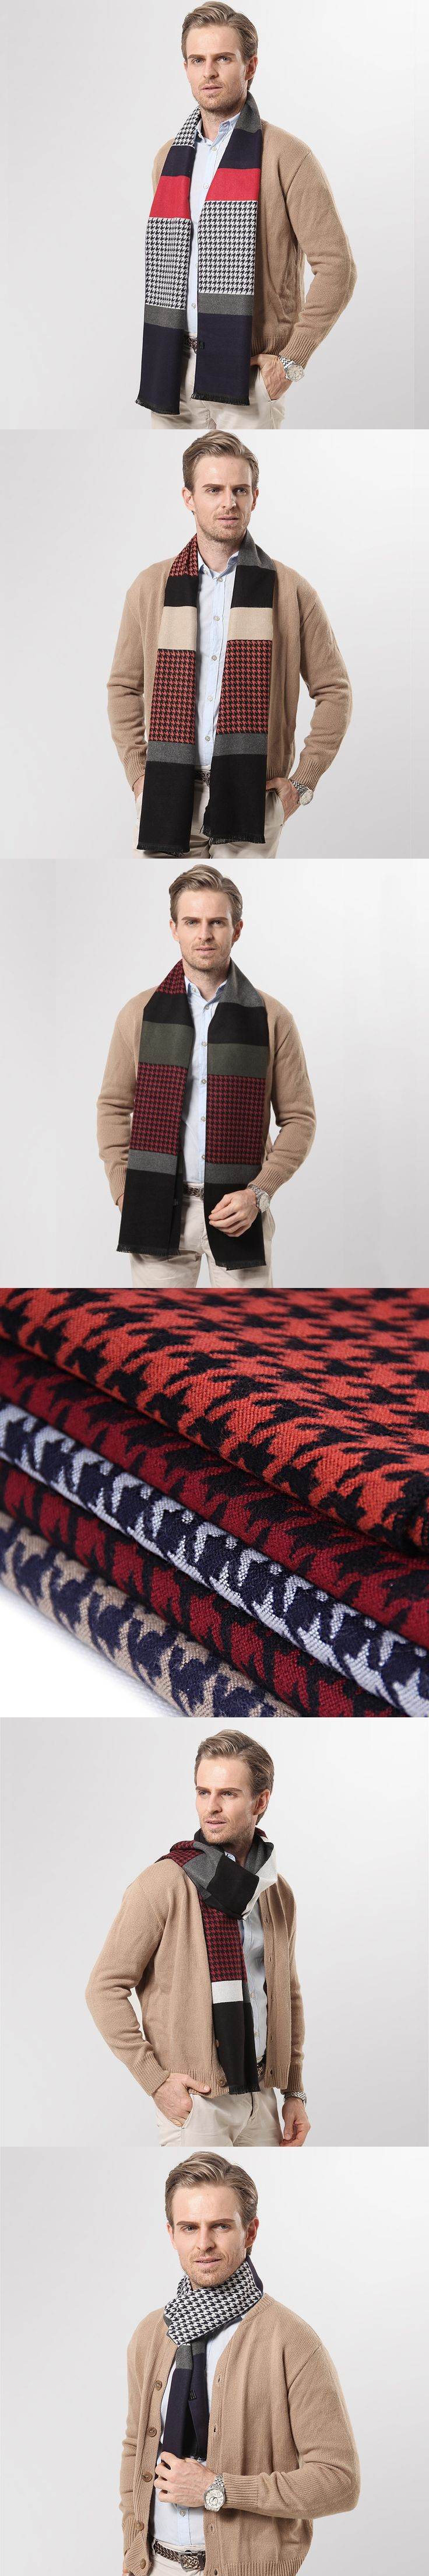 2016 Autumn and Winter Men Scarf Luxury Brand Cashmere Scarf Shawl Winter Warm Houndstooth Plaid Print Business Scarves for Men